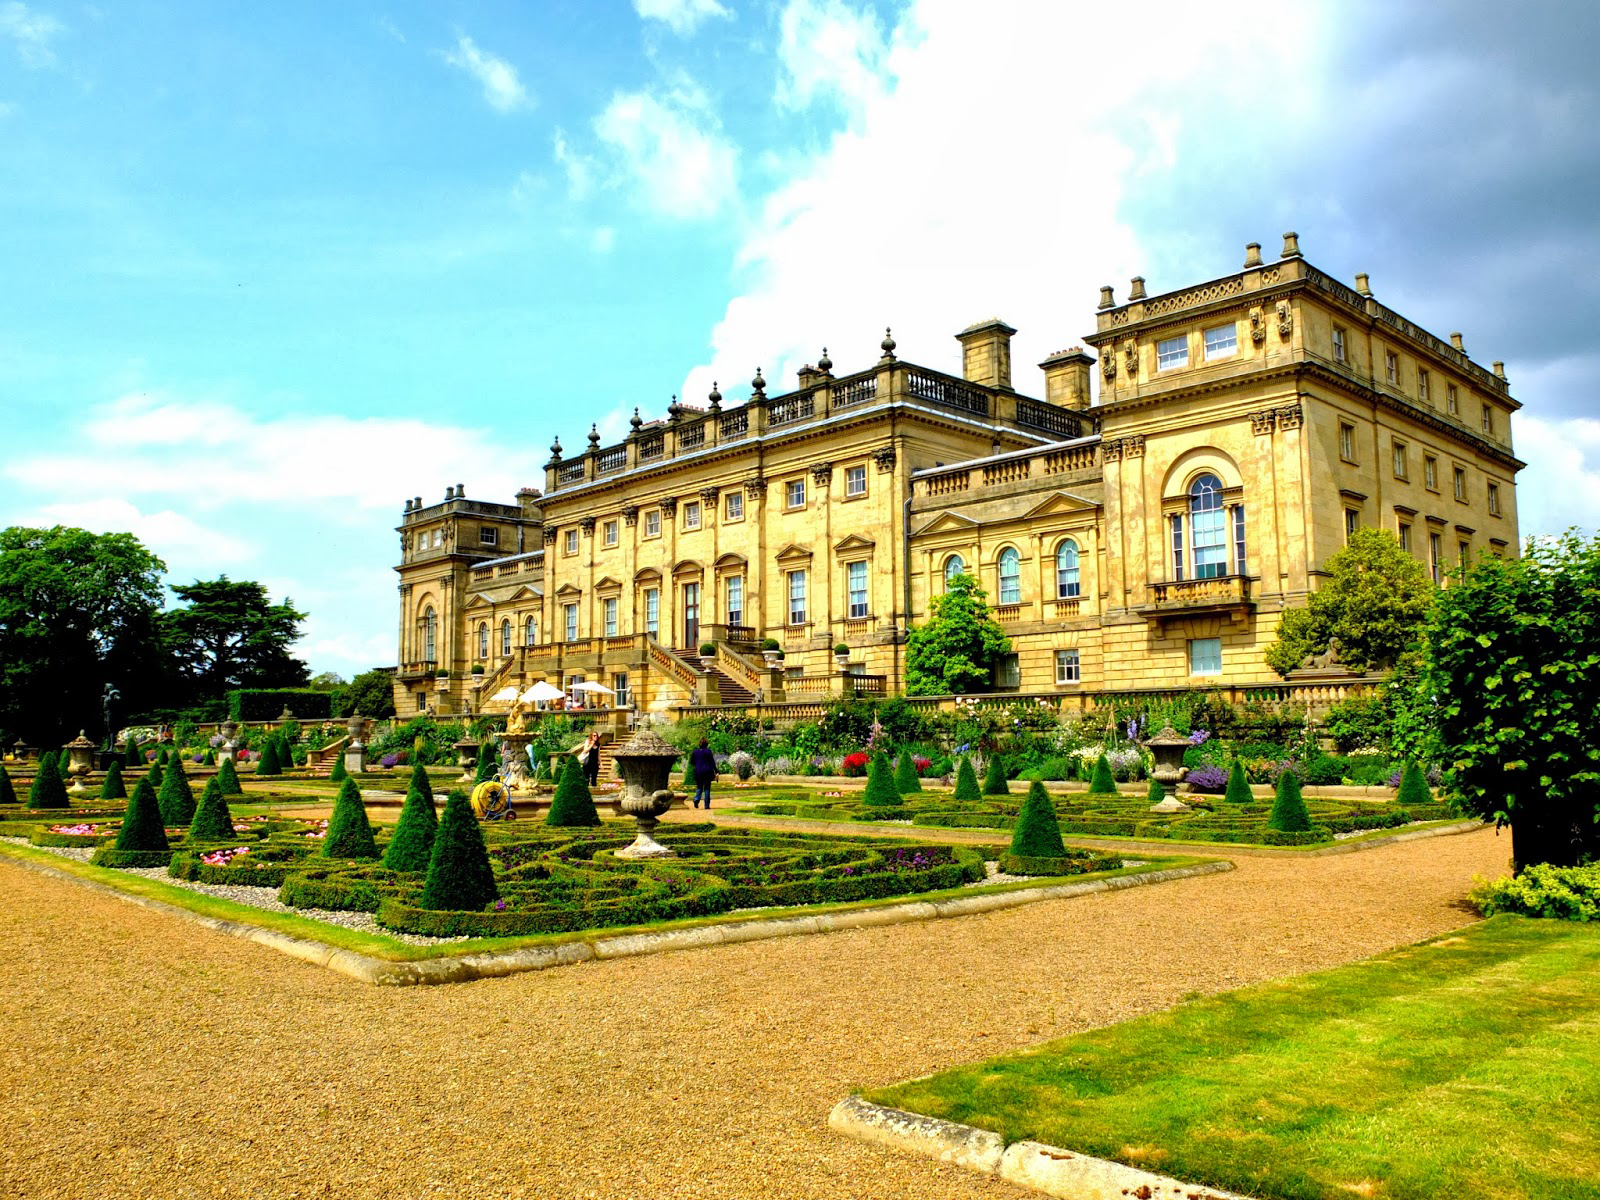 Harewood_House_from_the_terrace_garden